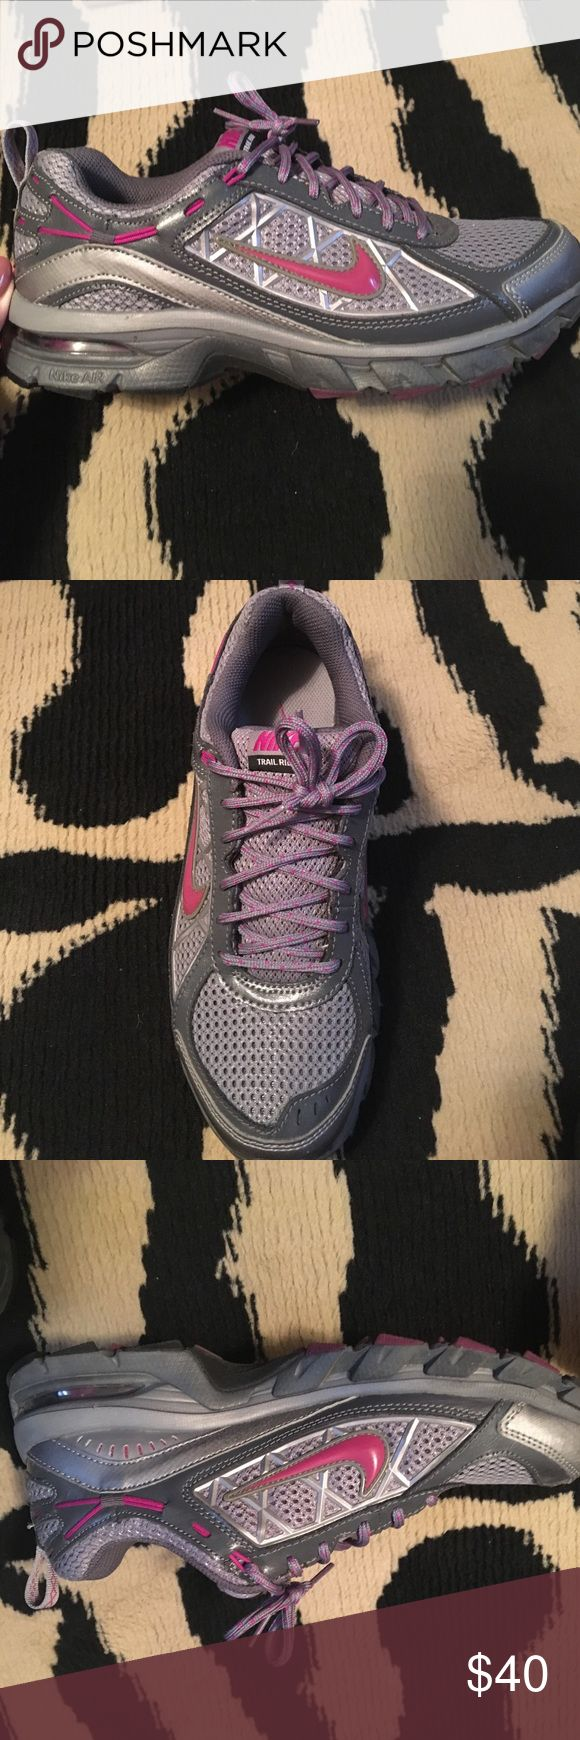 Nike Trail Ridge Sneakers These gray and magenta Nike sneakers are a steal!Gently worn once from a smoke free home. Nike Shoes Sneakers